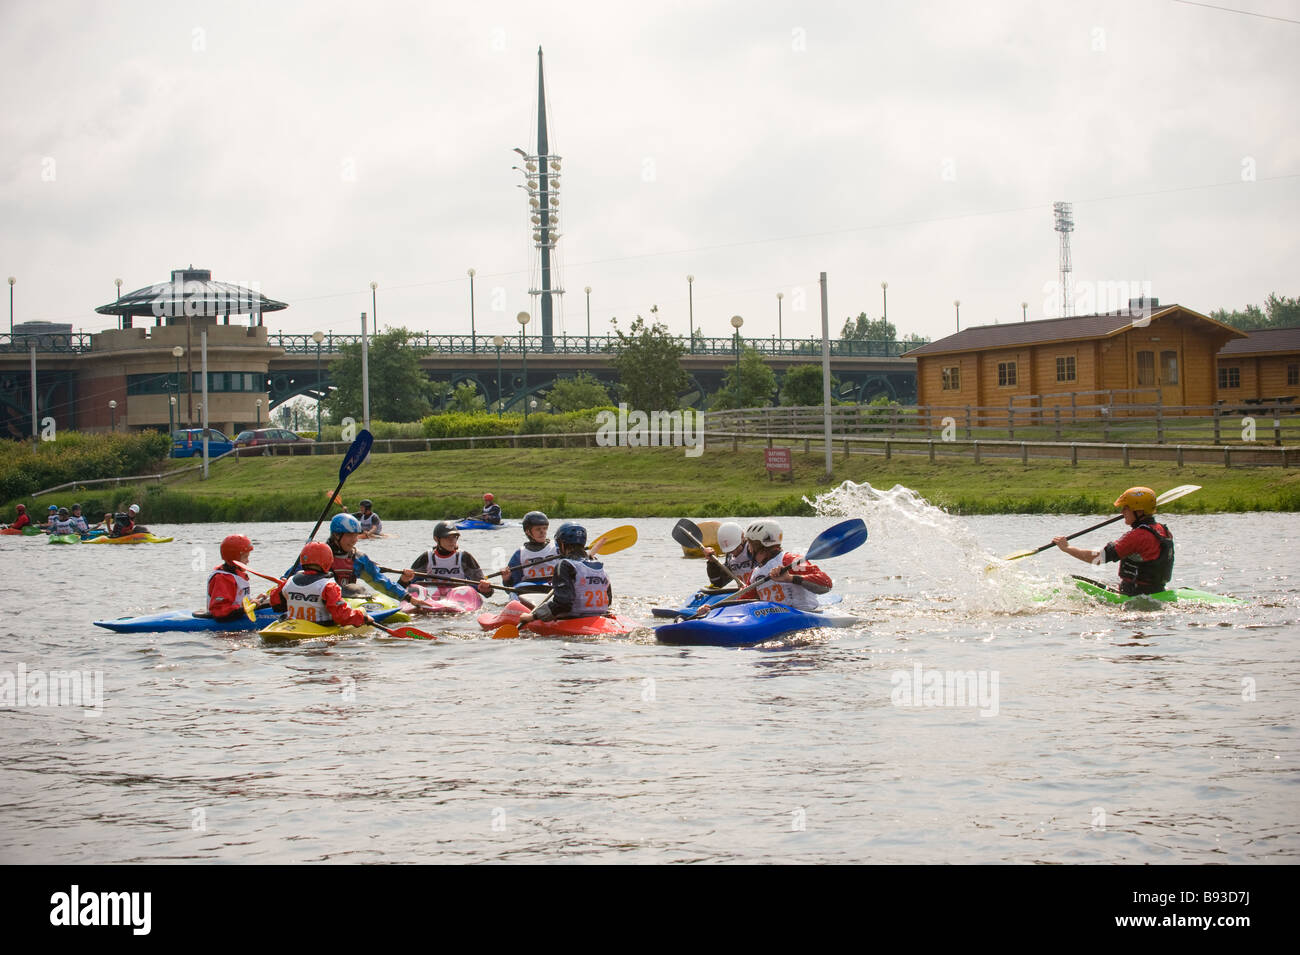 Kayak training at Teesside white water centre River Tees UK - Stock Image